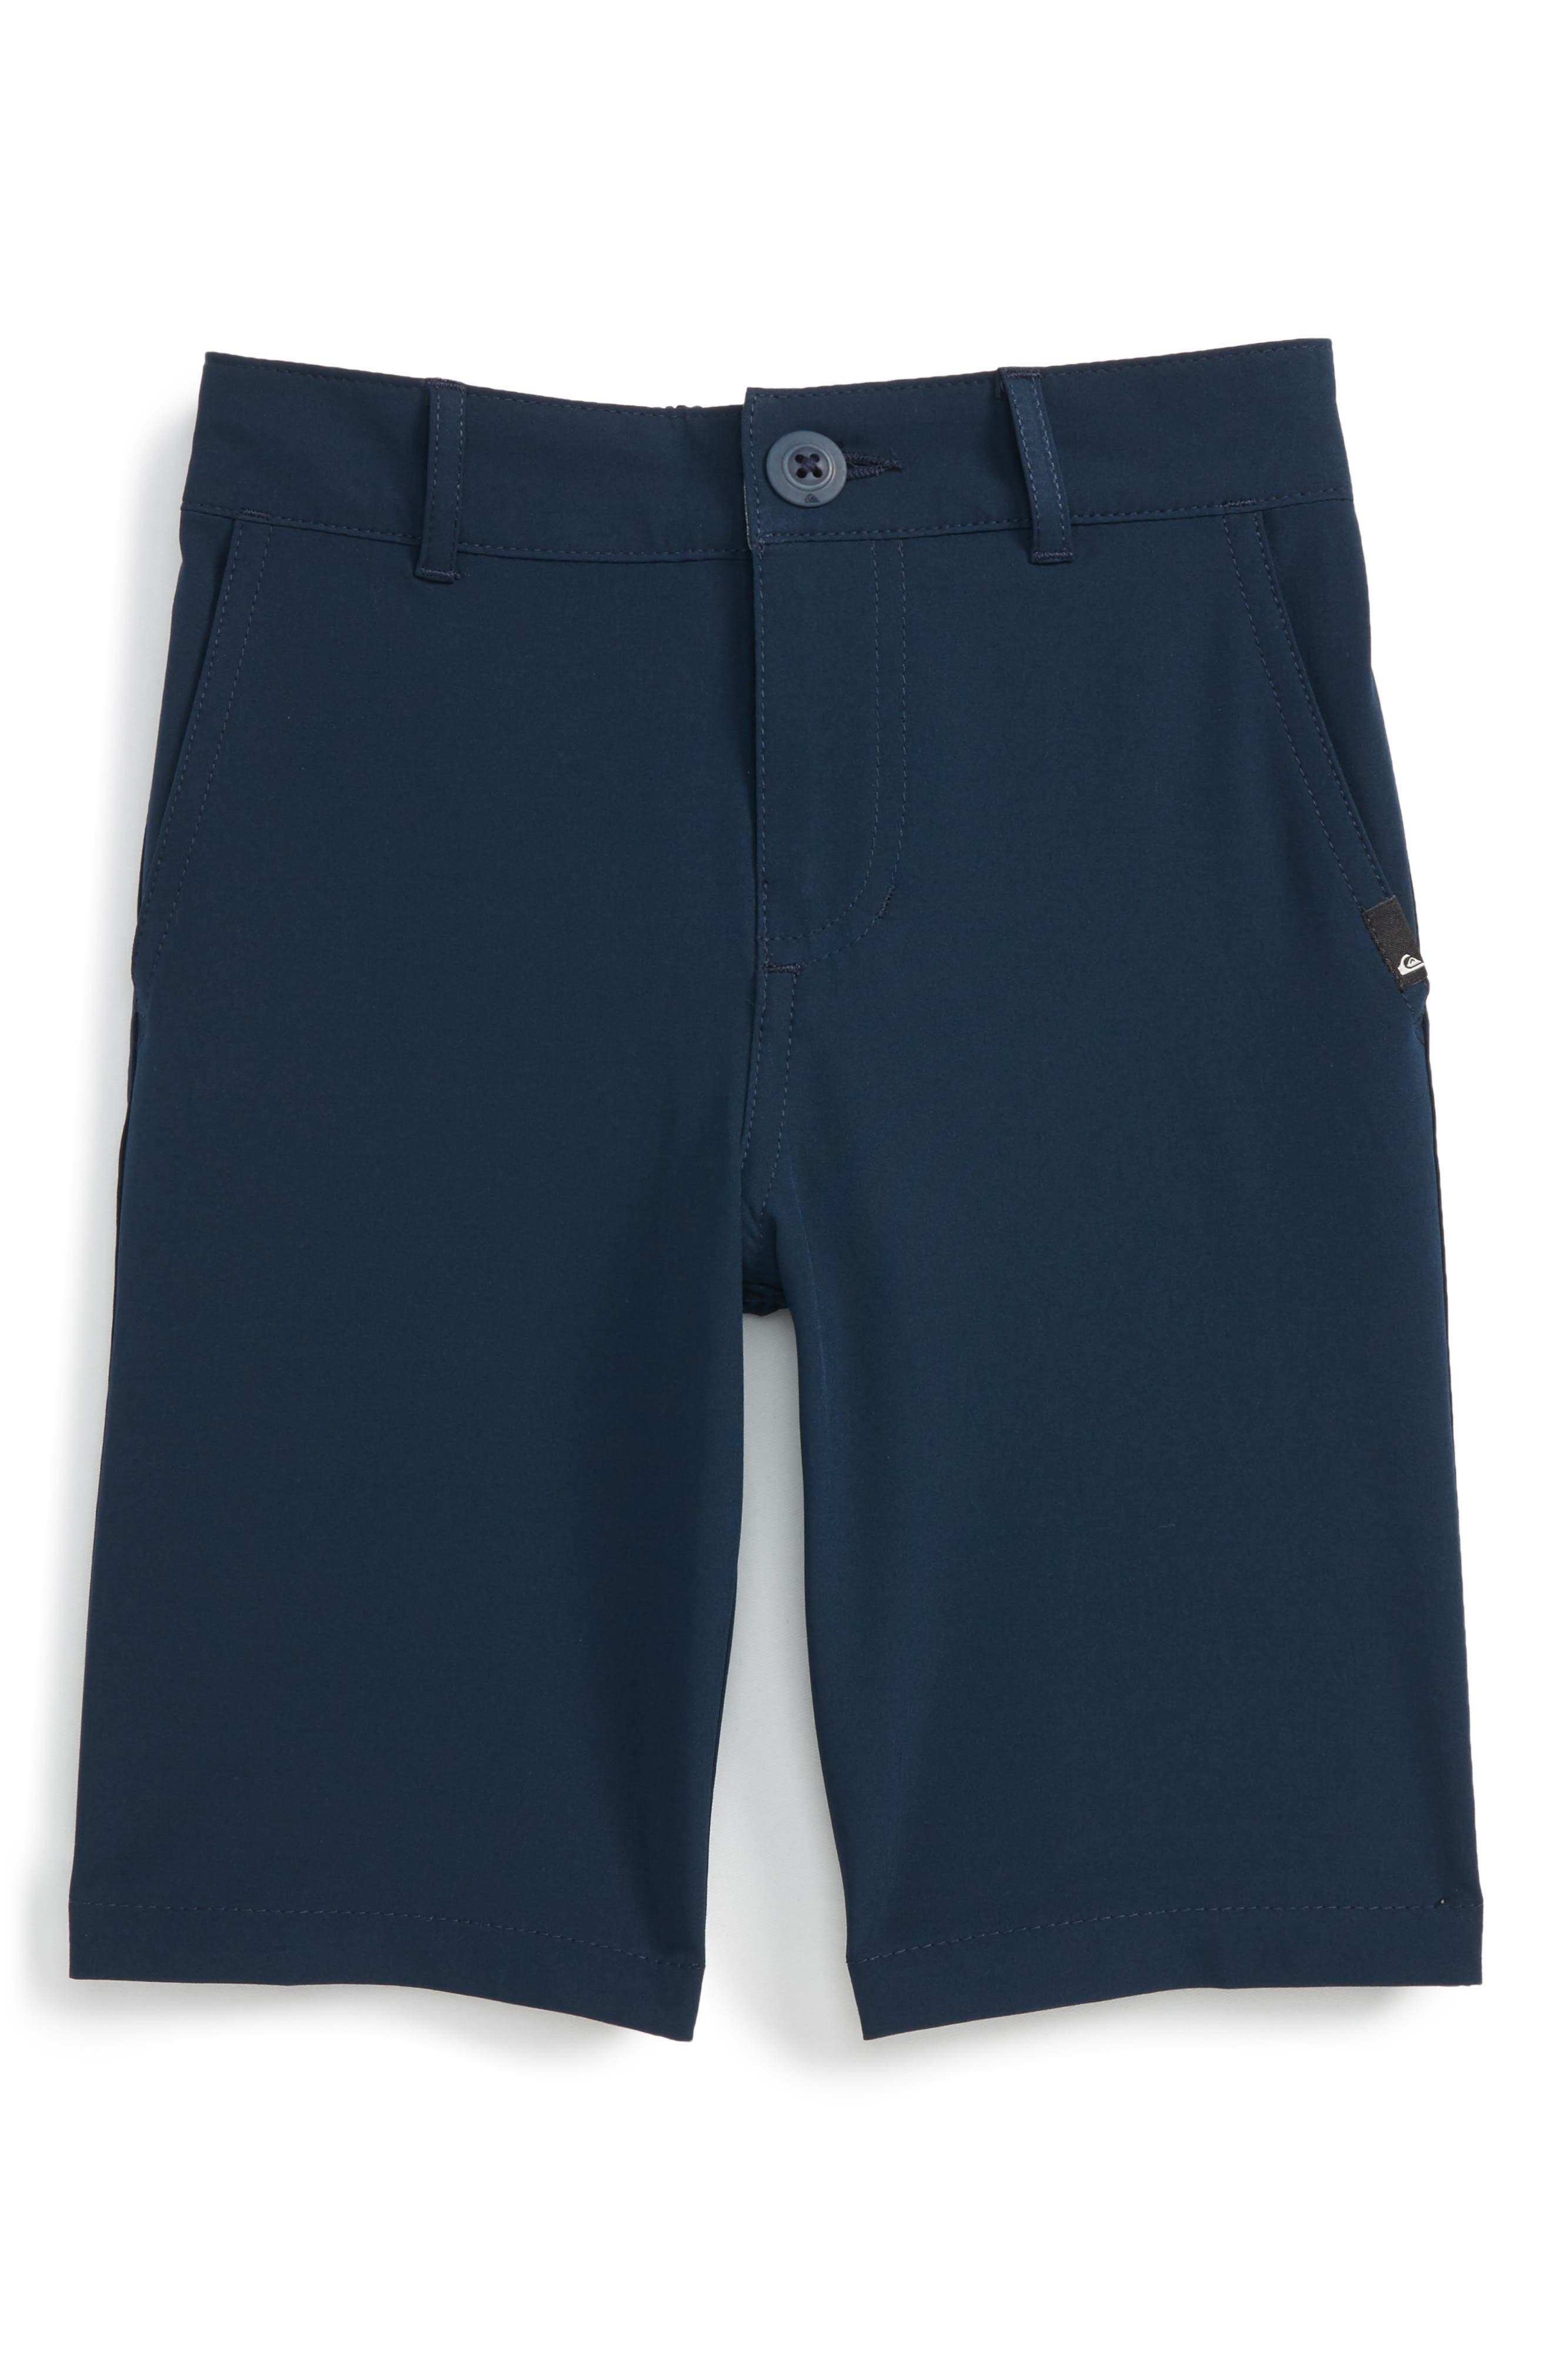 Amphibian Hybrid Shorts,                             Main thumbnail 1, color,                             Navy Blazer